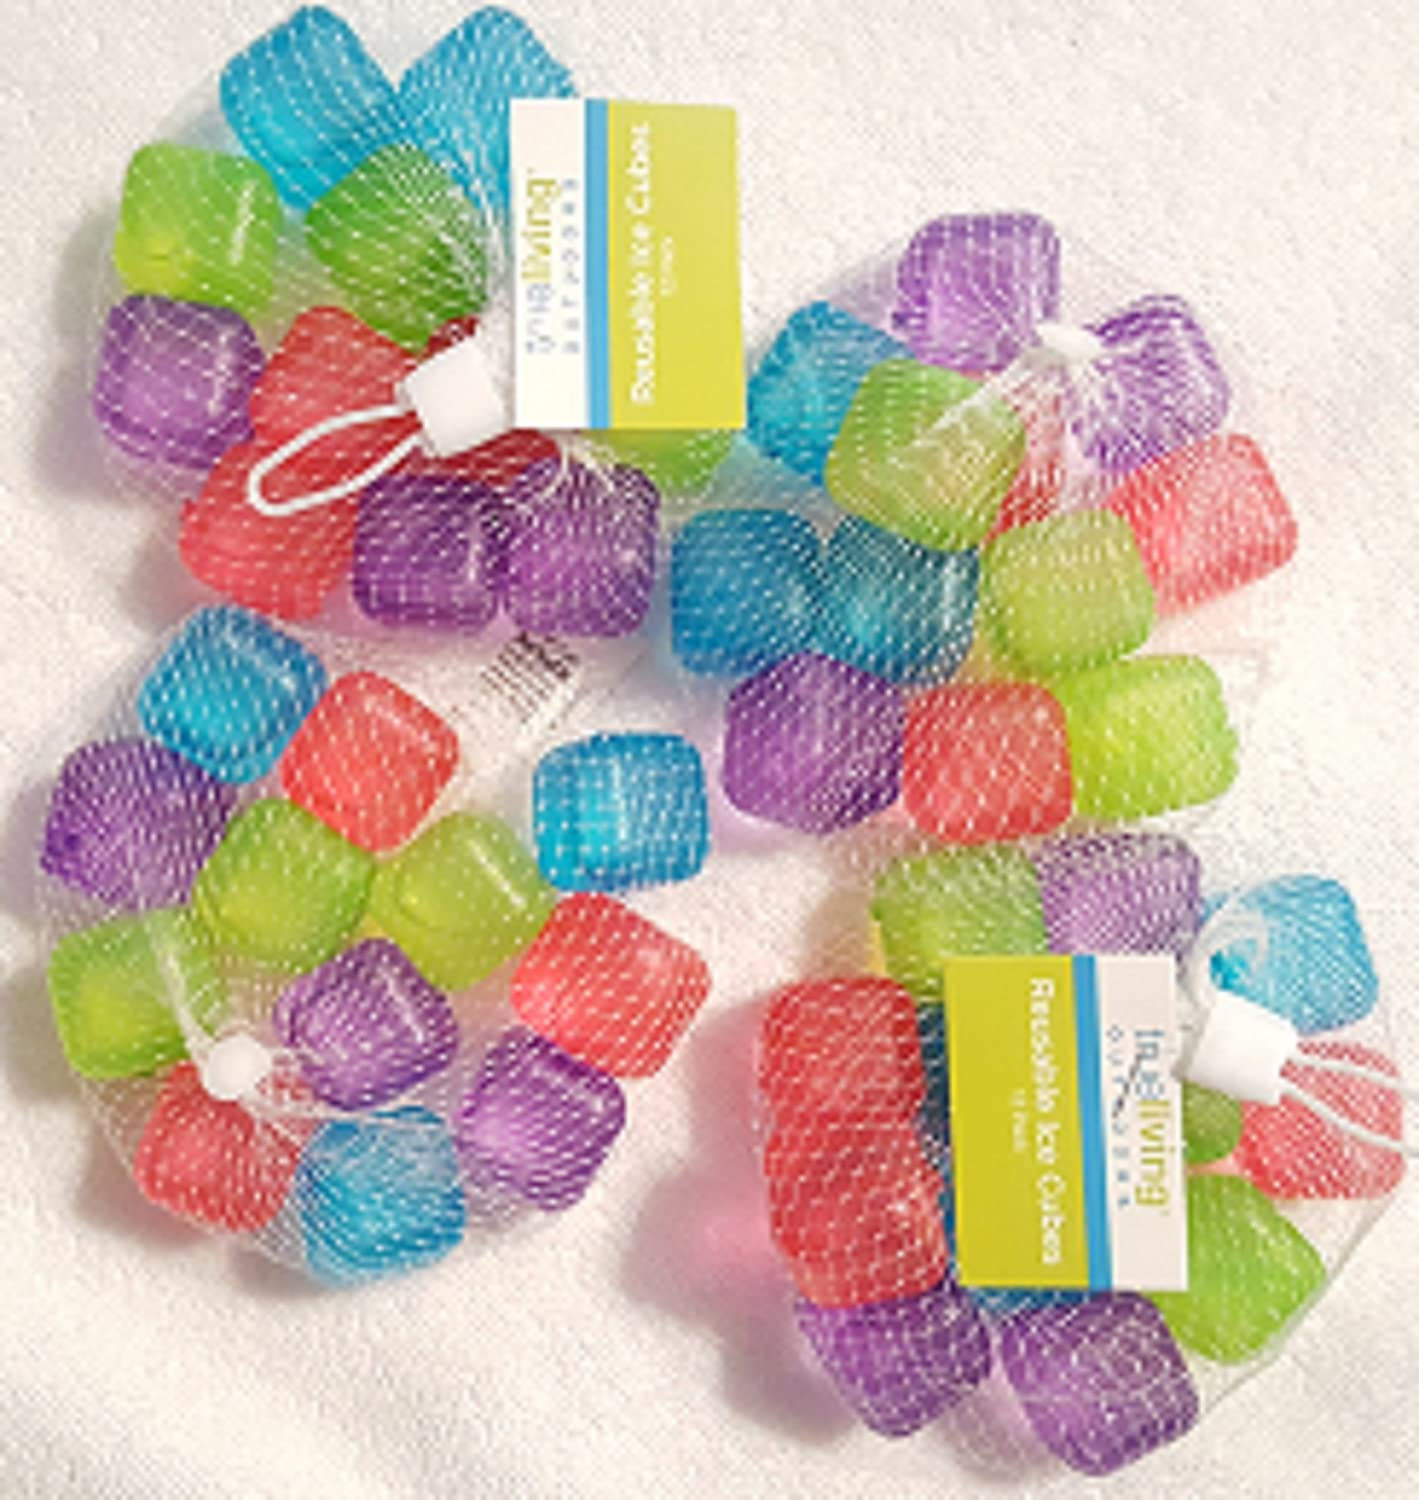 Reusable Plastic Ice Cubes - Colors May Vary (48 cubes)